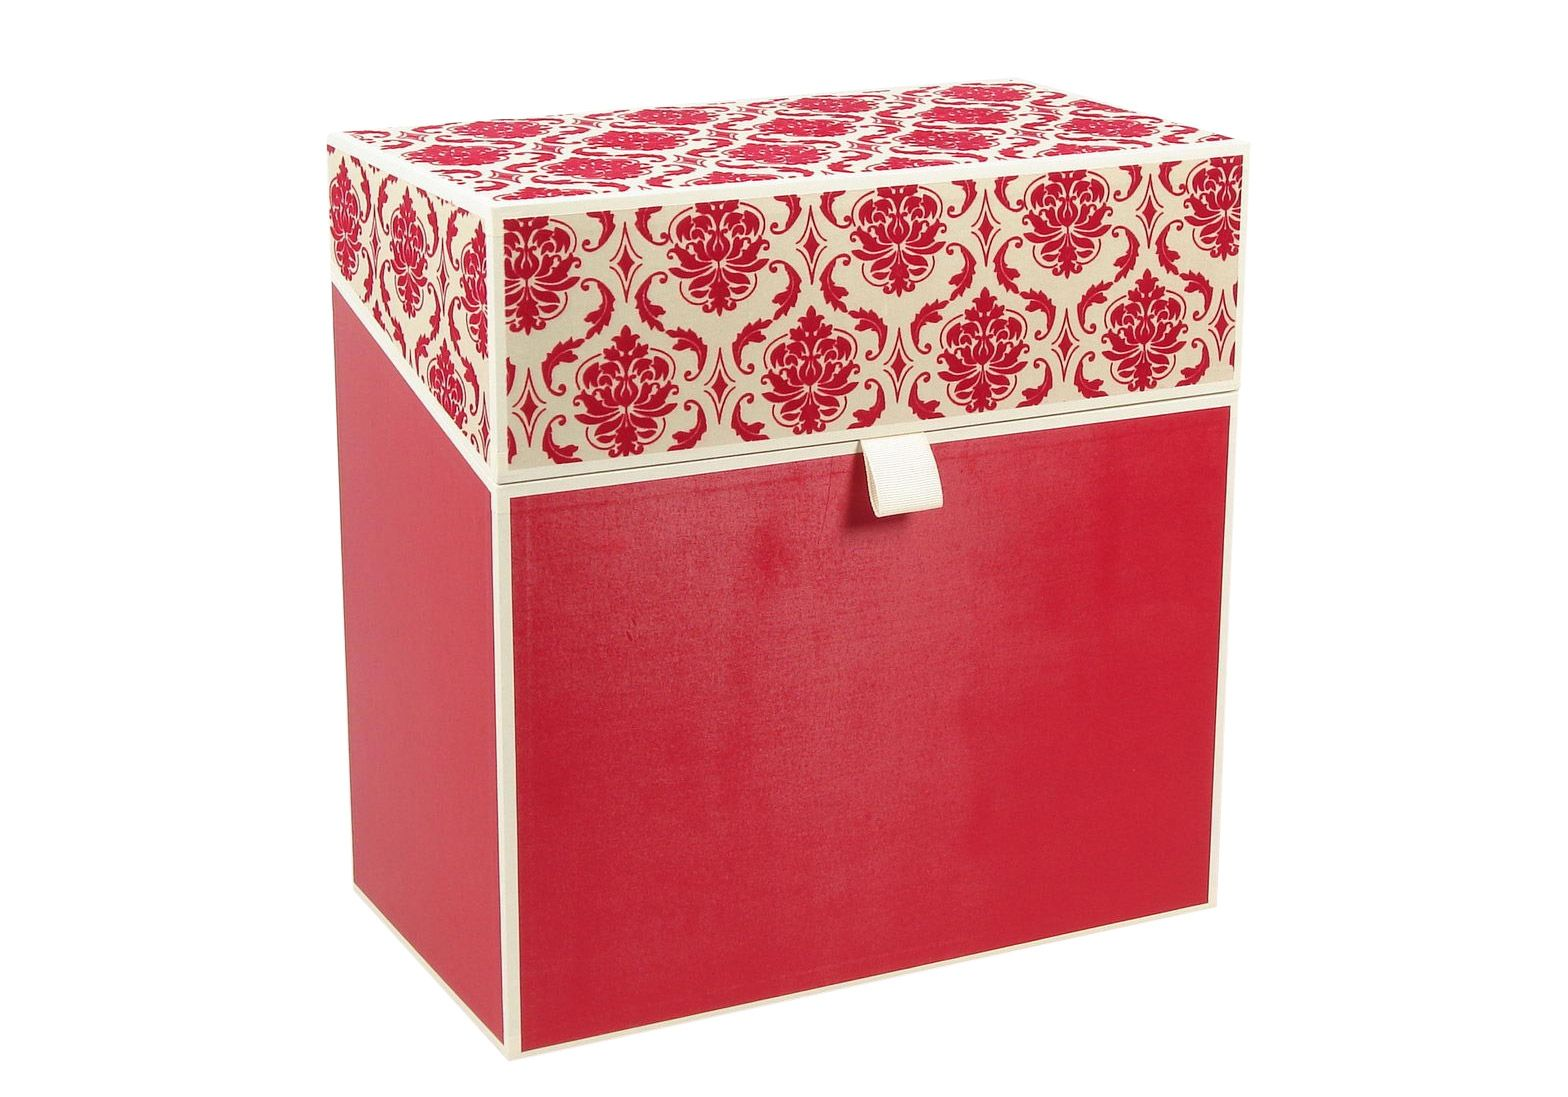 Paper Decorative Boxes Home Sweet Craft Room Oversized Stationary Box  Scarlet Diy